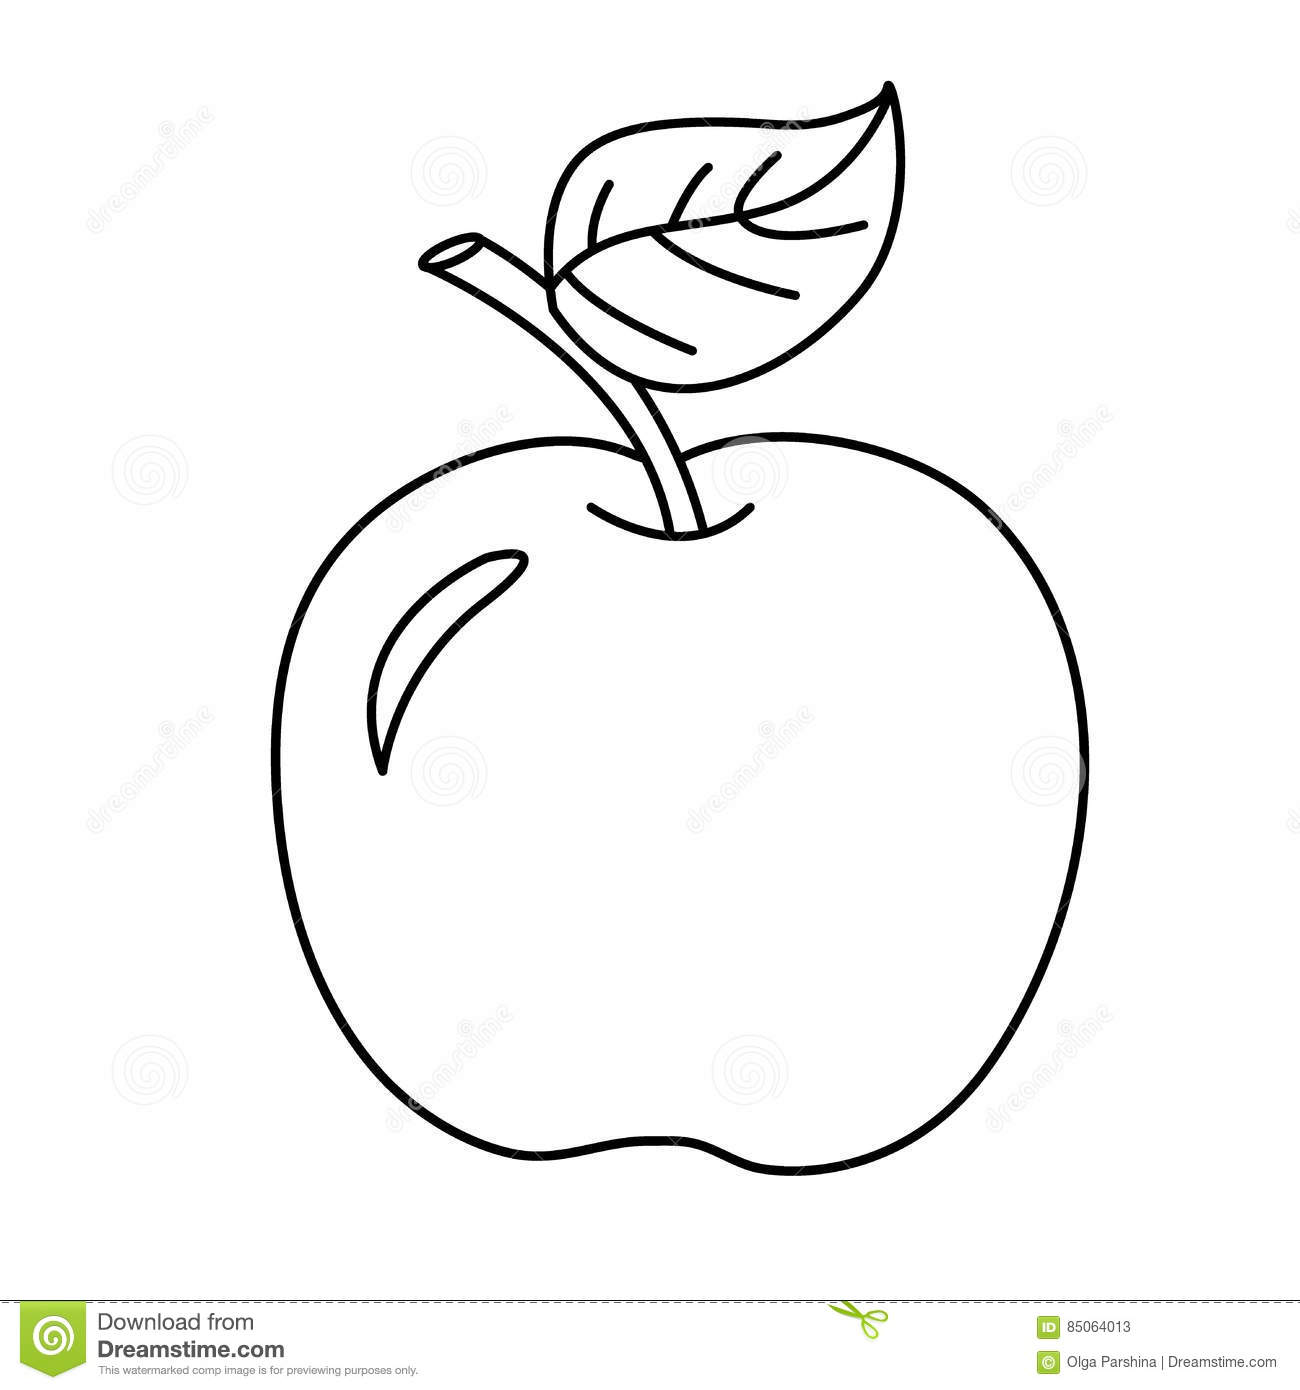 Cartoon Apple Coloring Pages : Apple cartoon character lifting weights coloring page